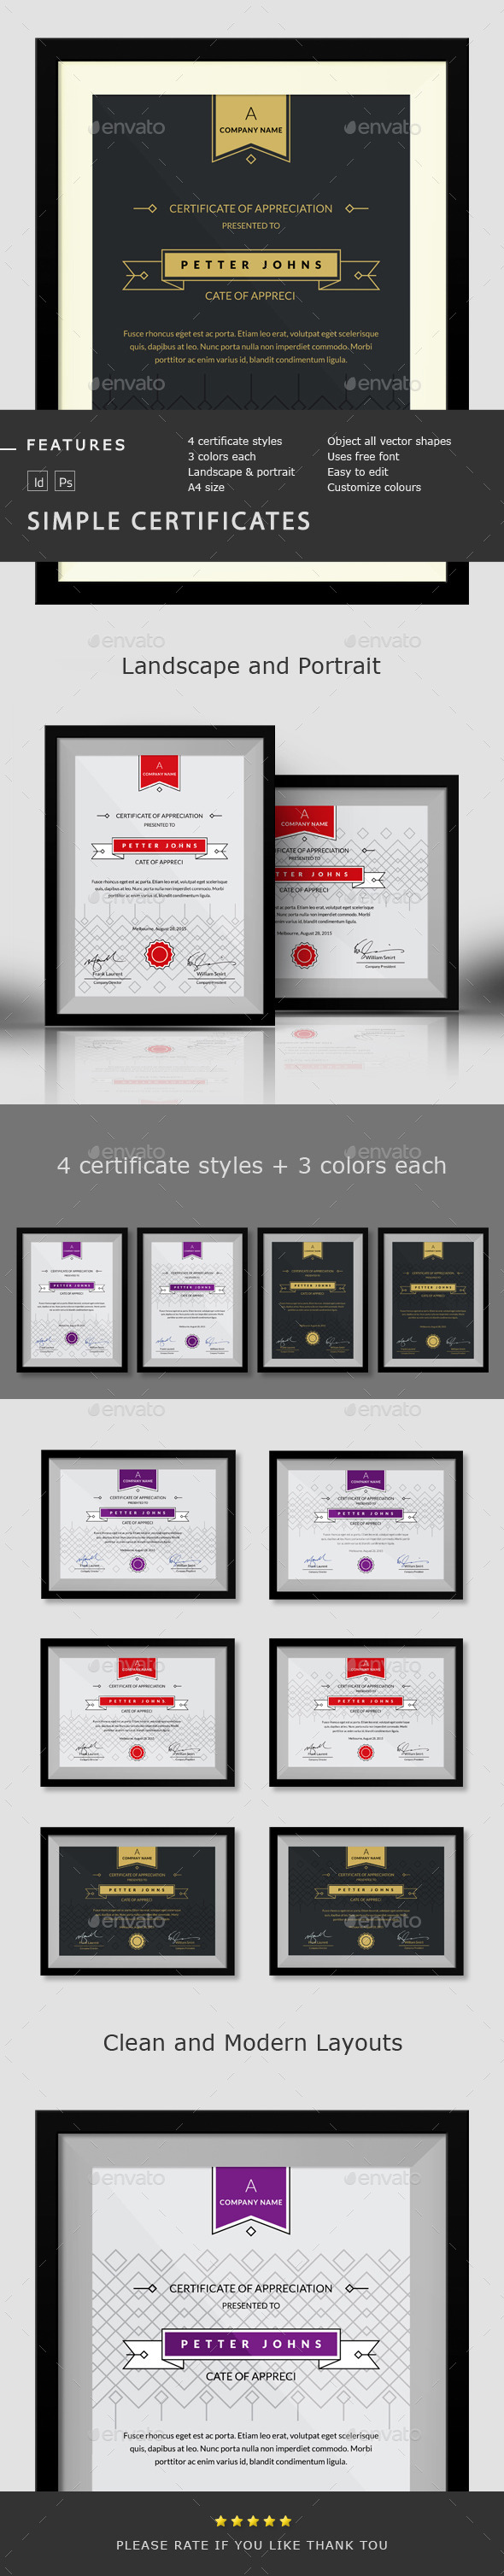 GraphicRiver Simple Certificates Template 10221588